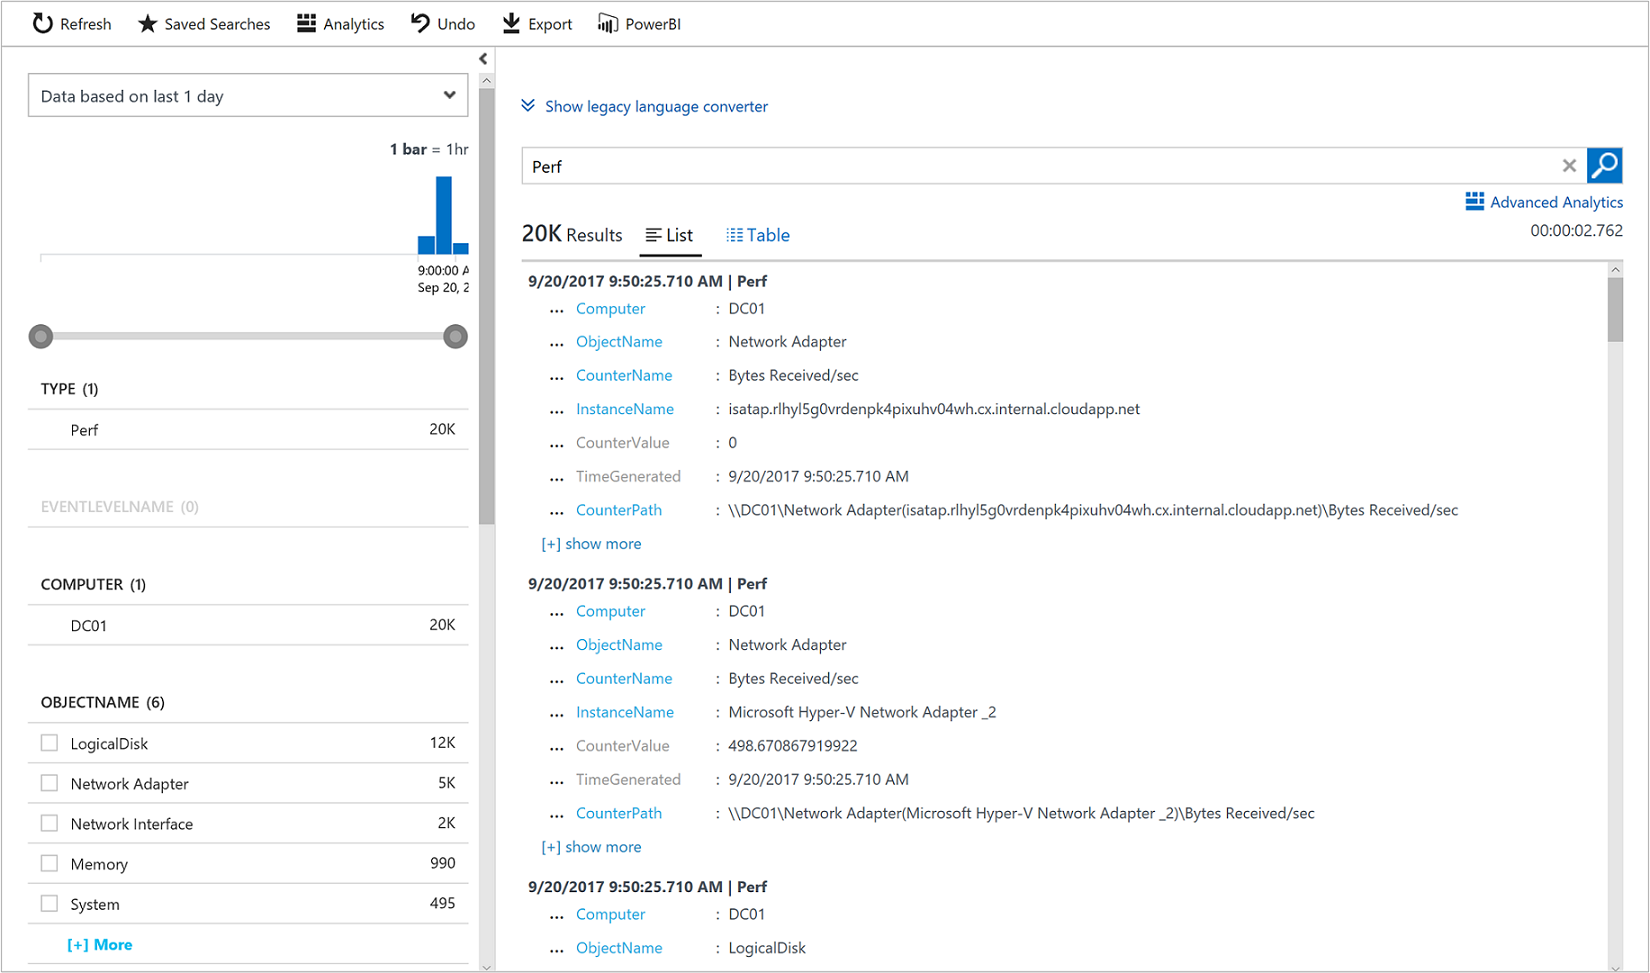 View or analyze Azure Log Analytics data collected | Microsoft Docs